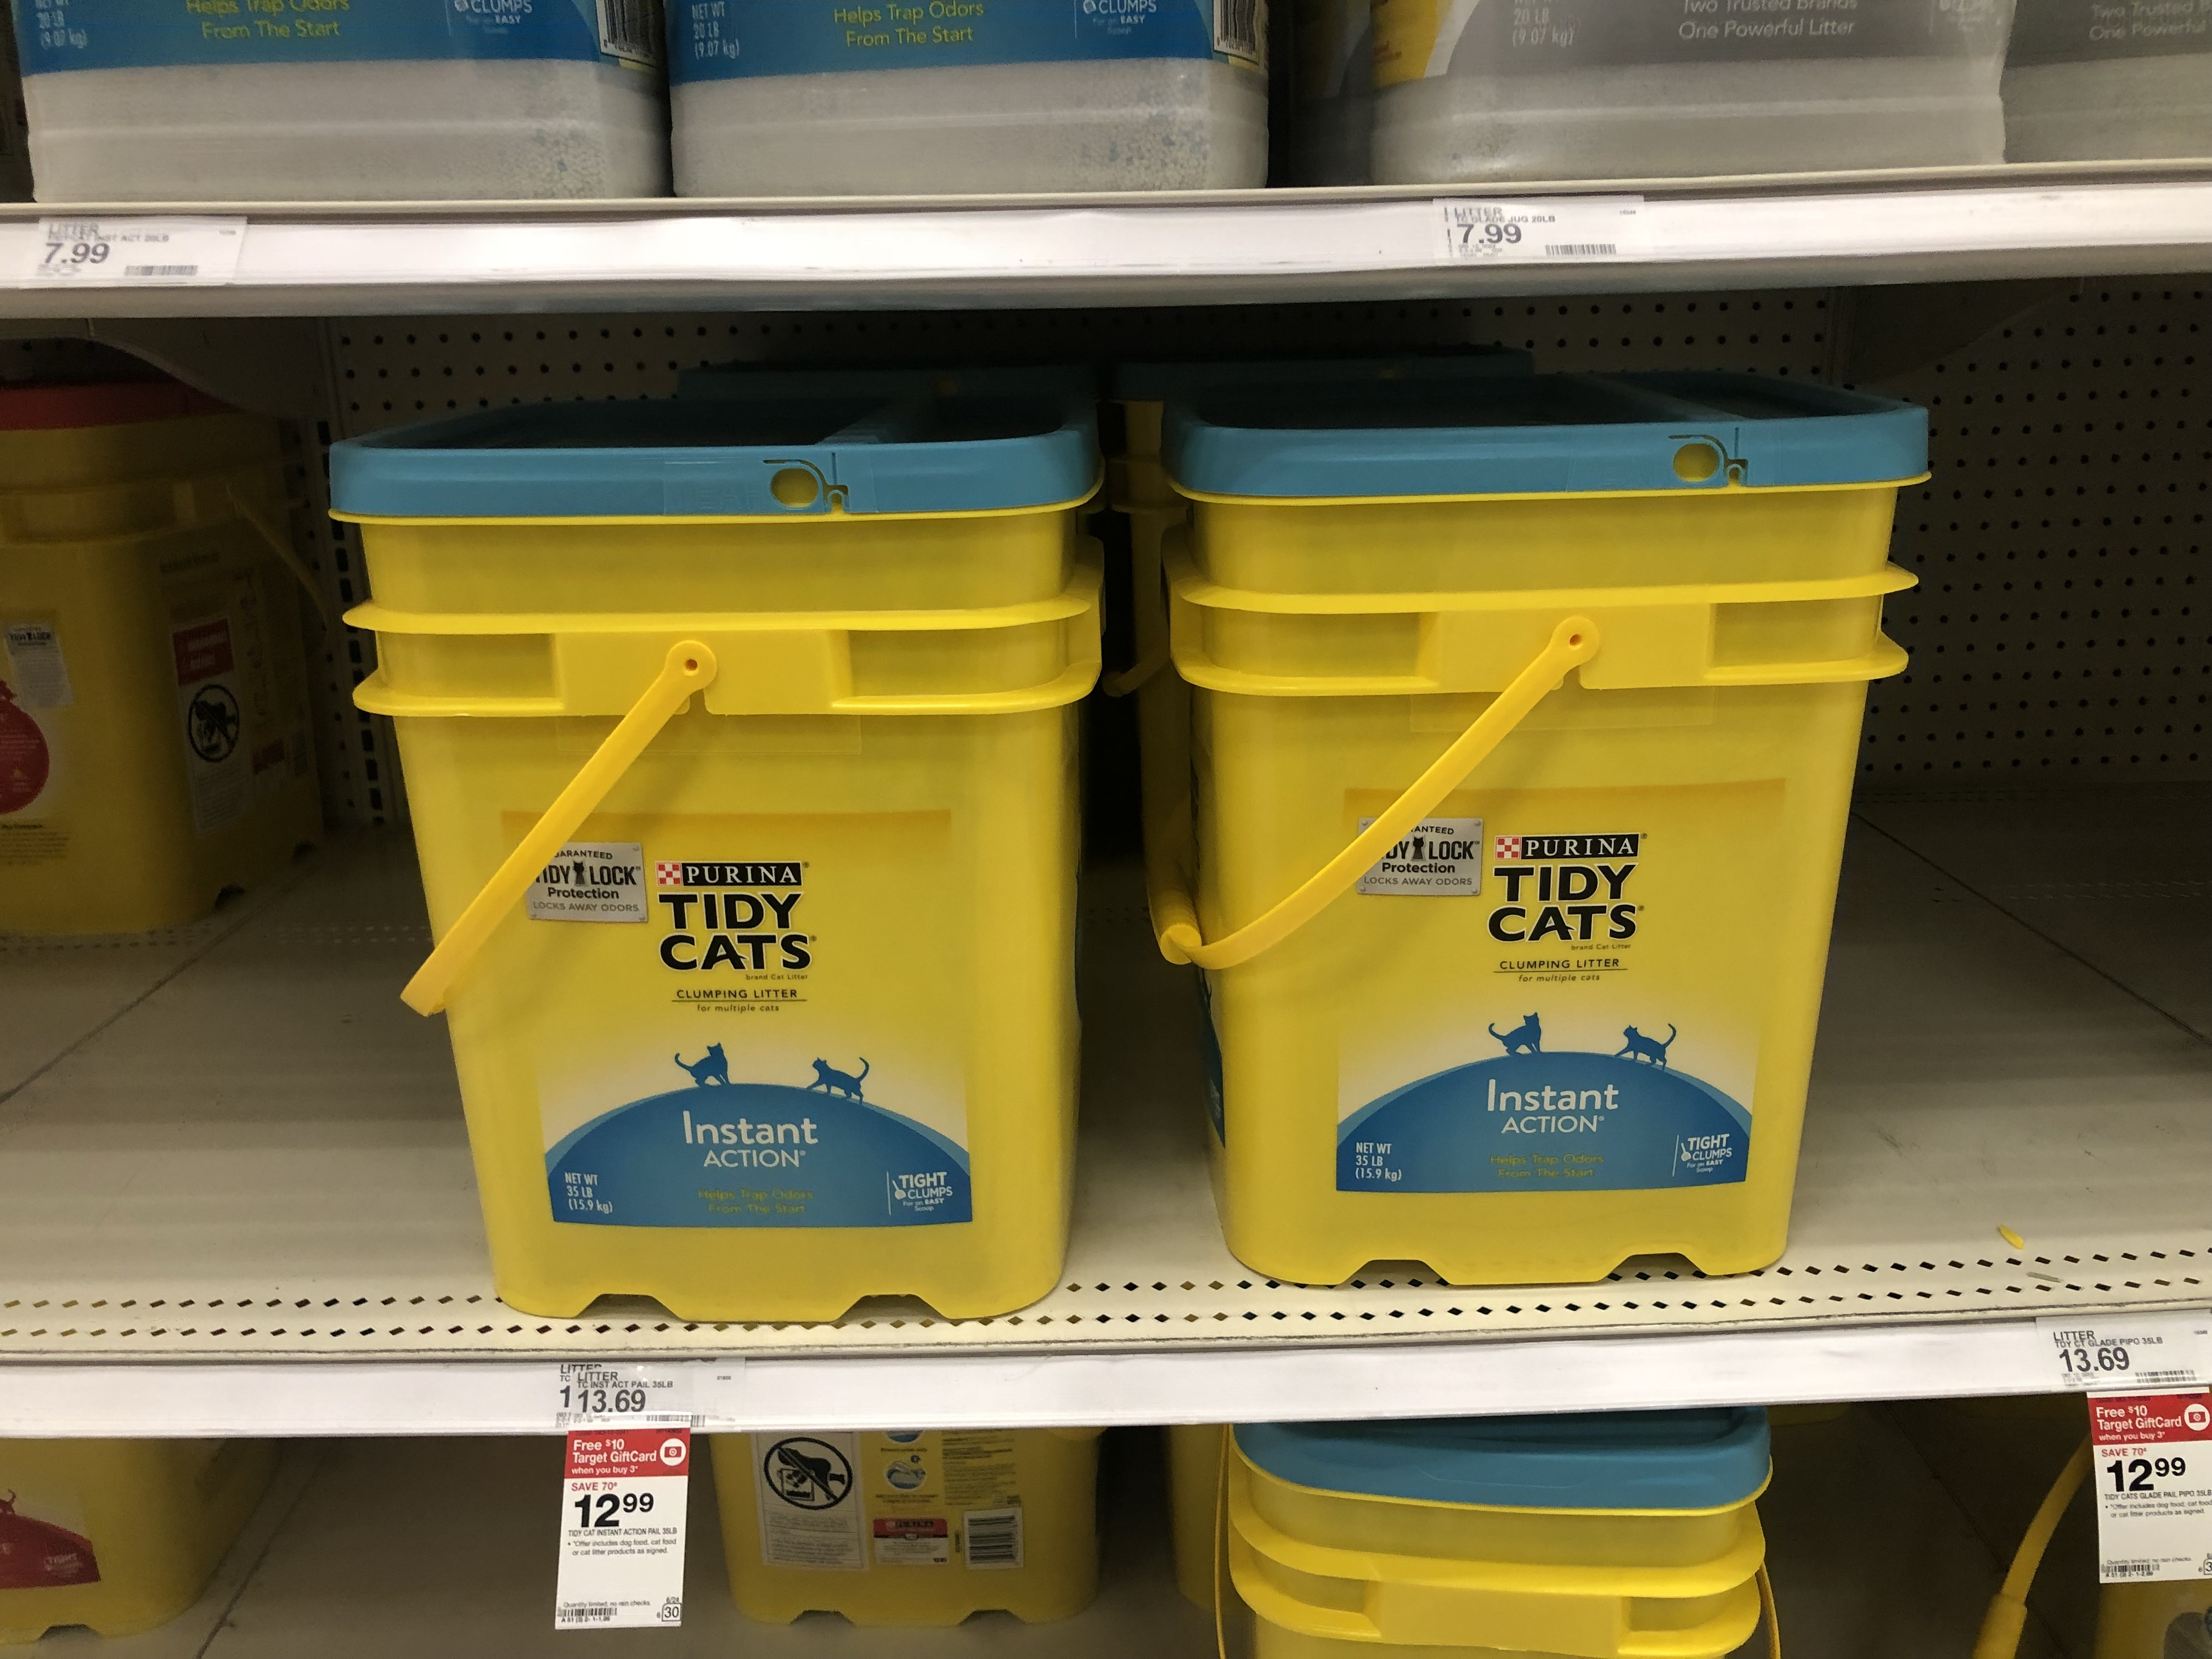 image regarding Tidy Cat Litter Coupons Printable identified as $7 Relevance of Tidy Cats Discount coupons \u003d 35 Excess weight Cat Clutter Just